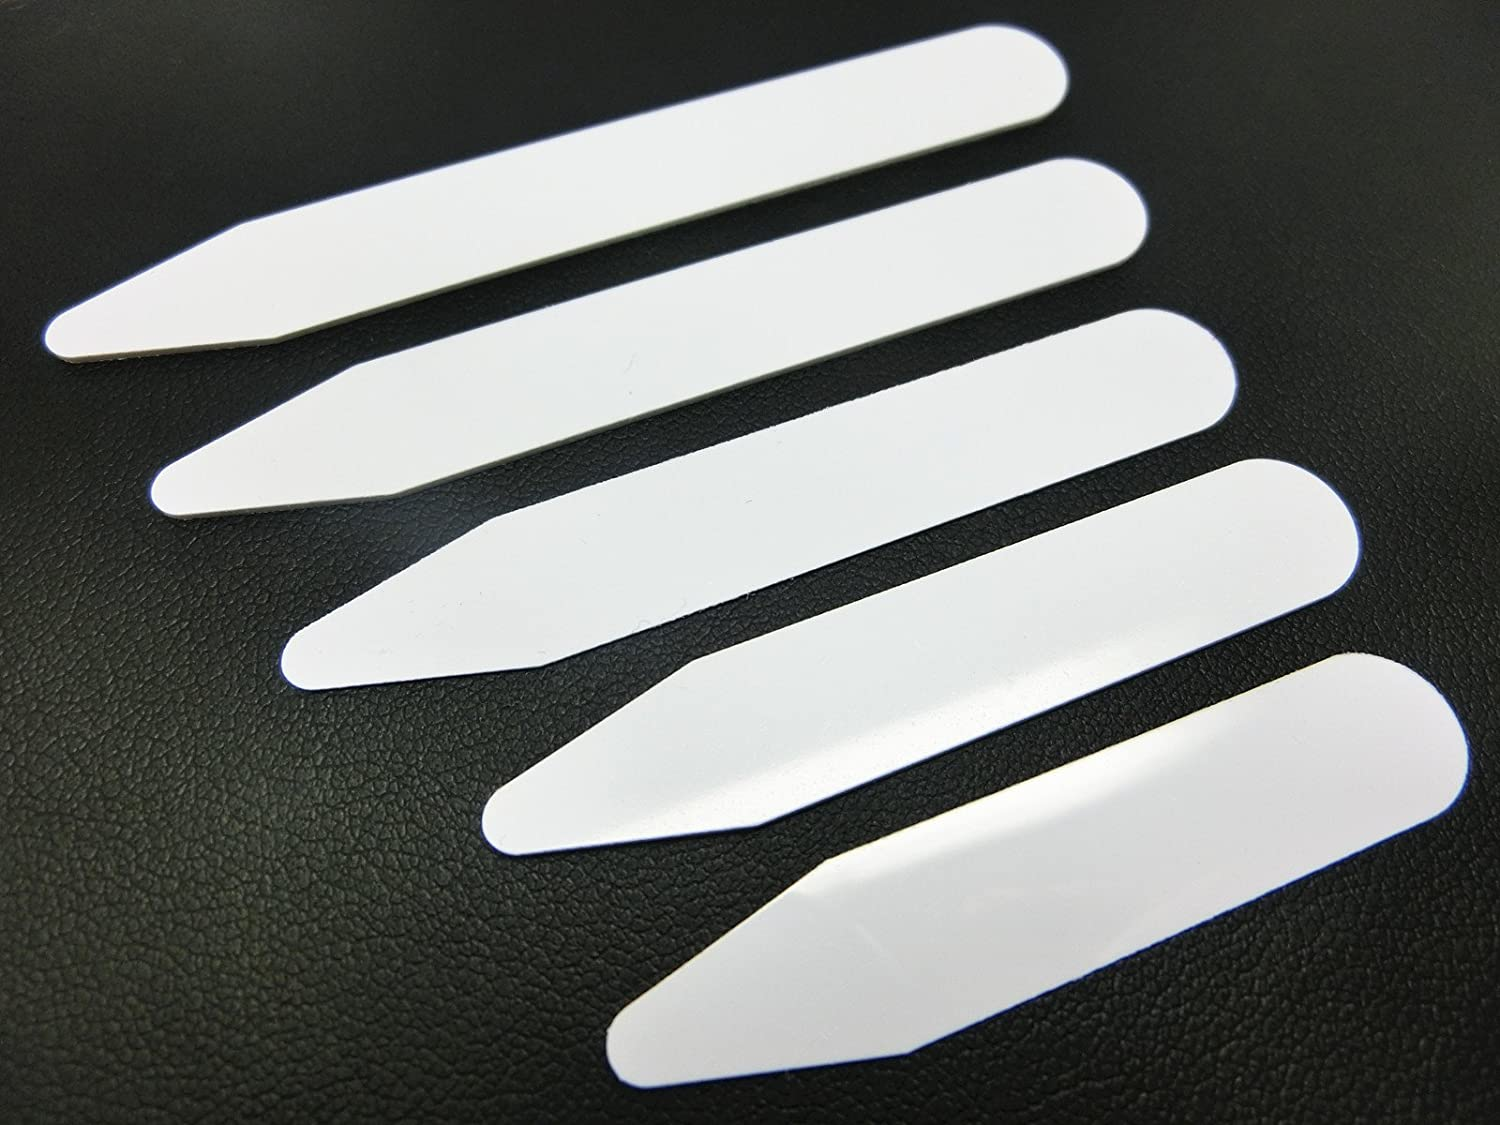 Shang Zun 200 Pcs Plastic White Collar Stays Bones Stiffeners 5 Sizes